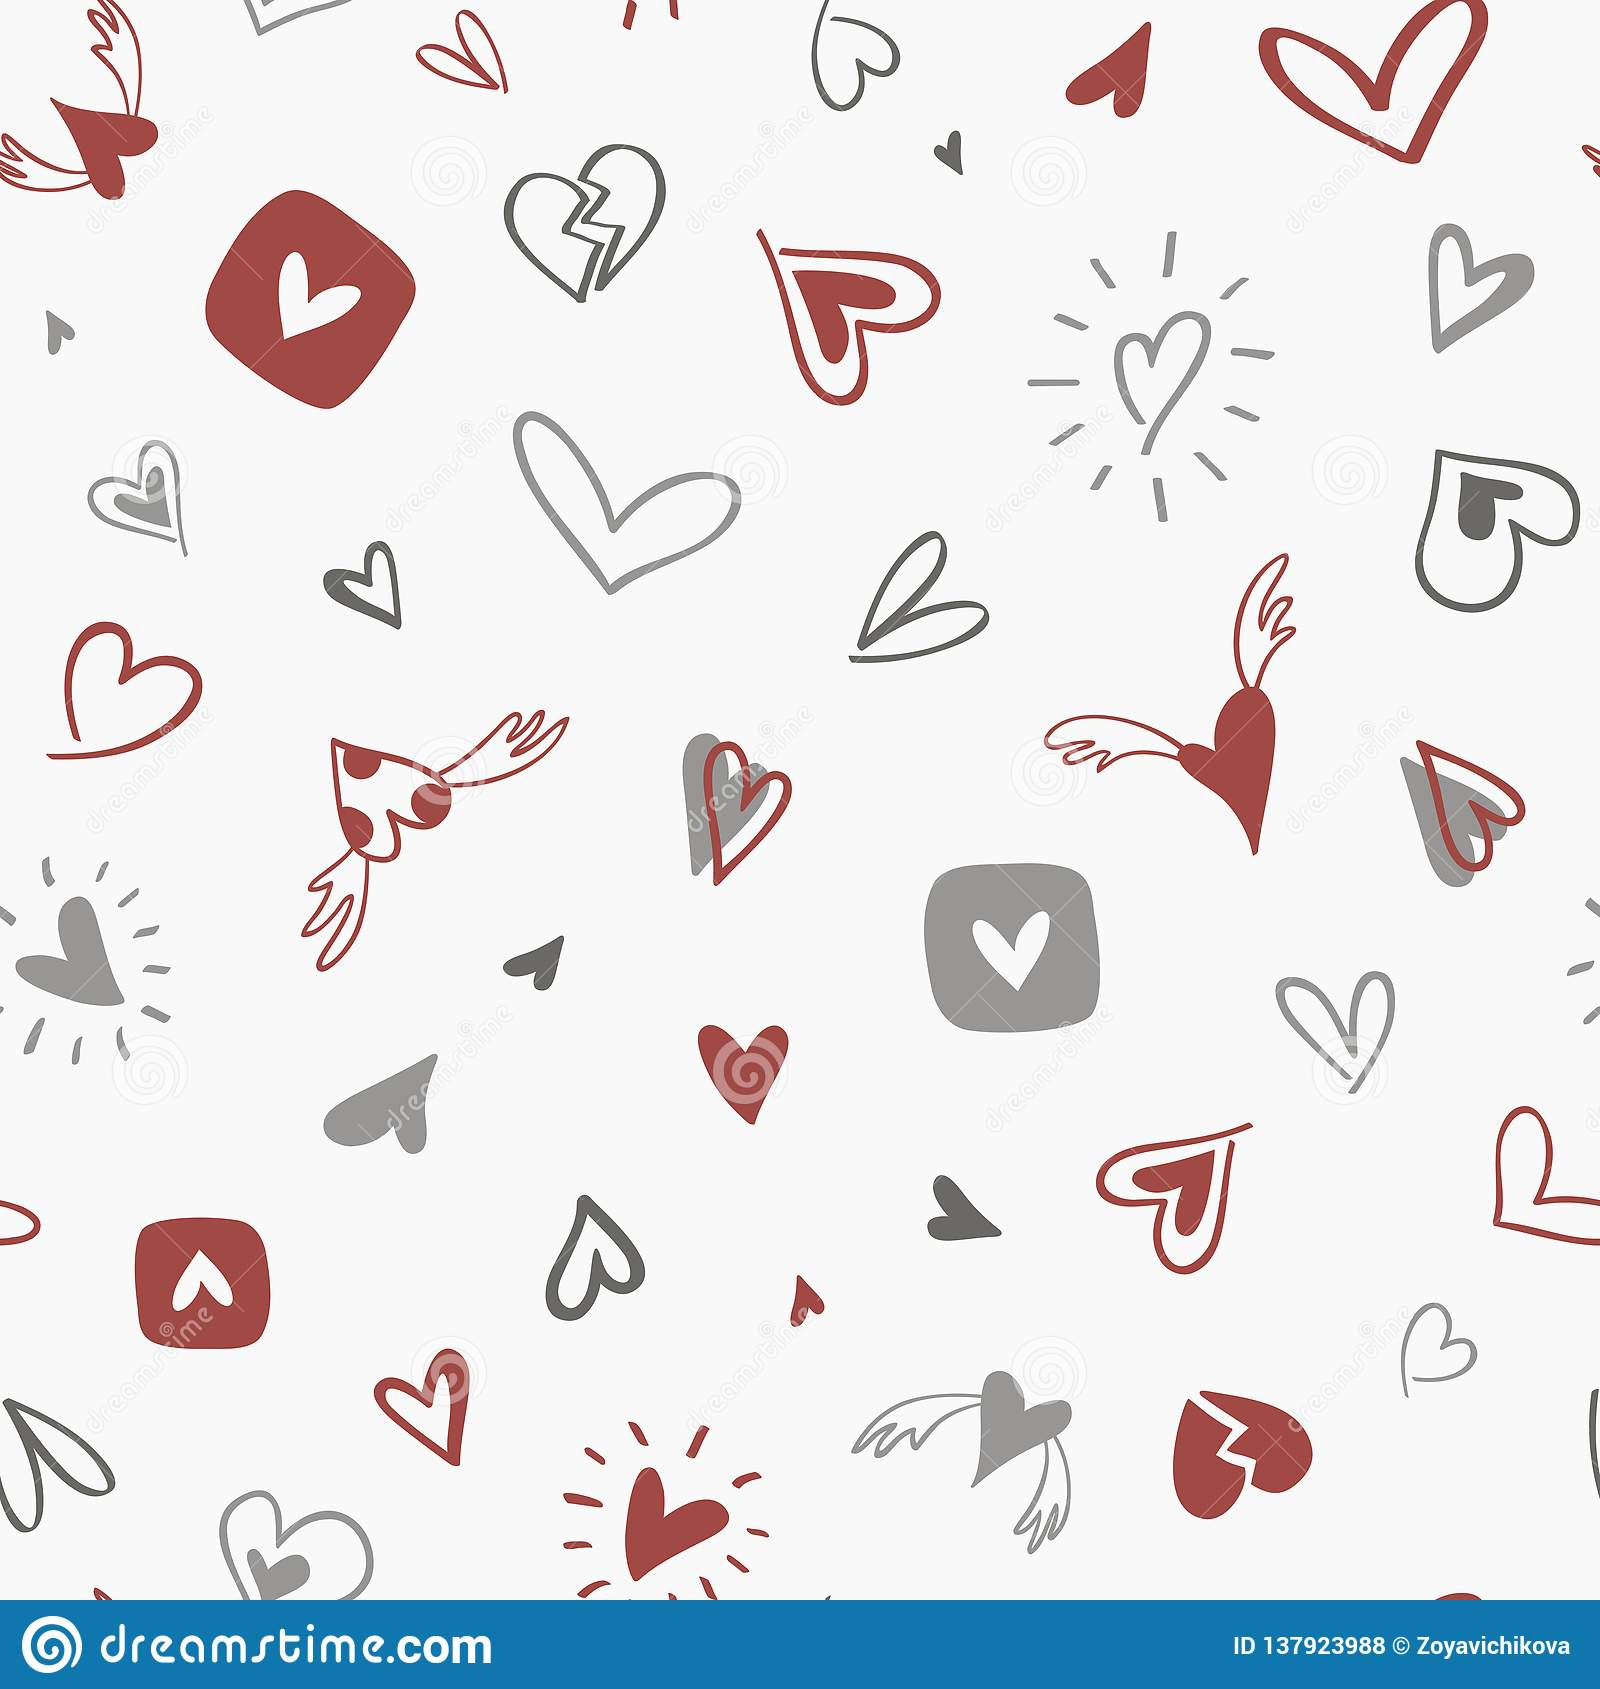 Seamless hand drawn pattern with gray-red hearts